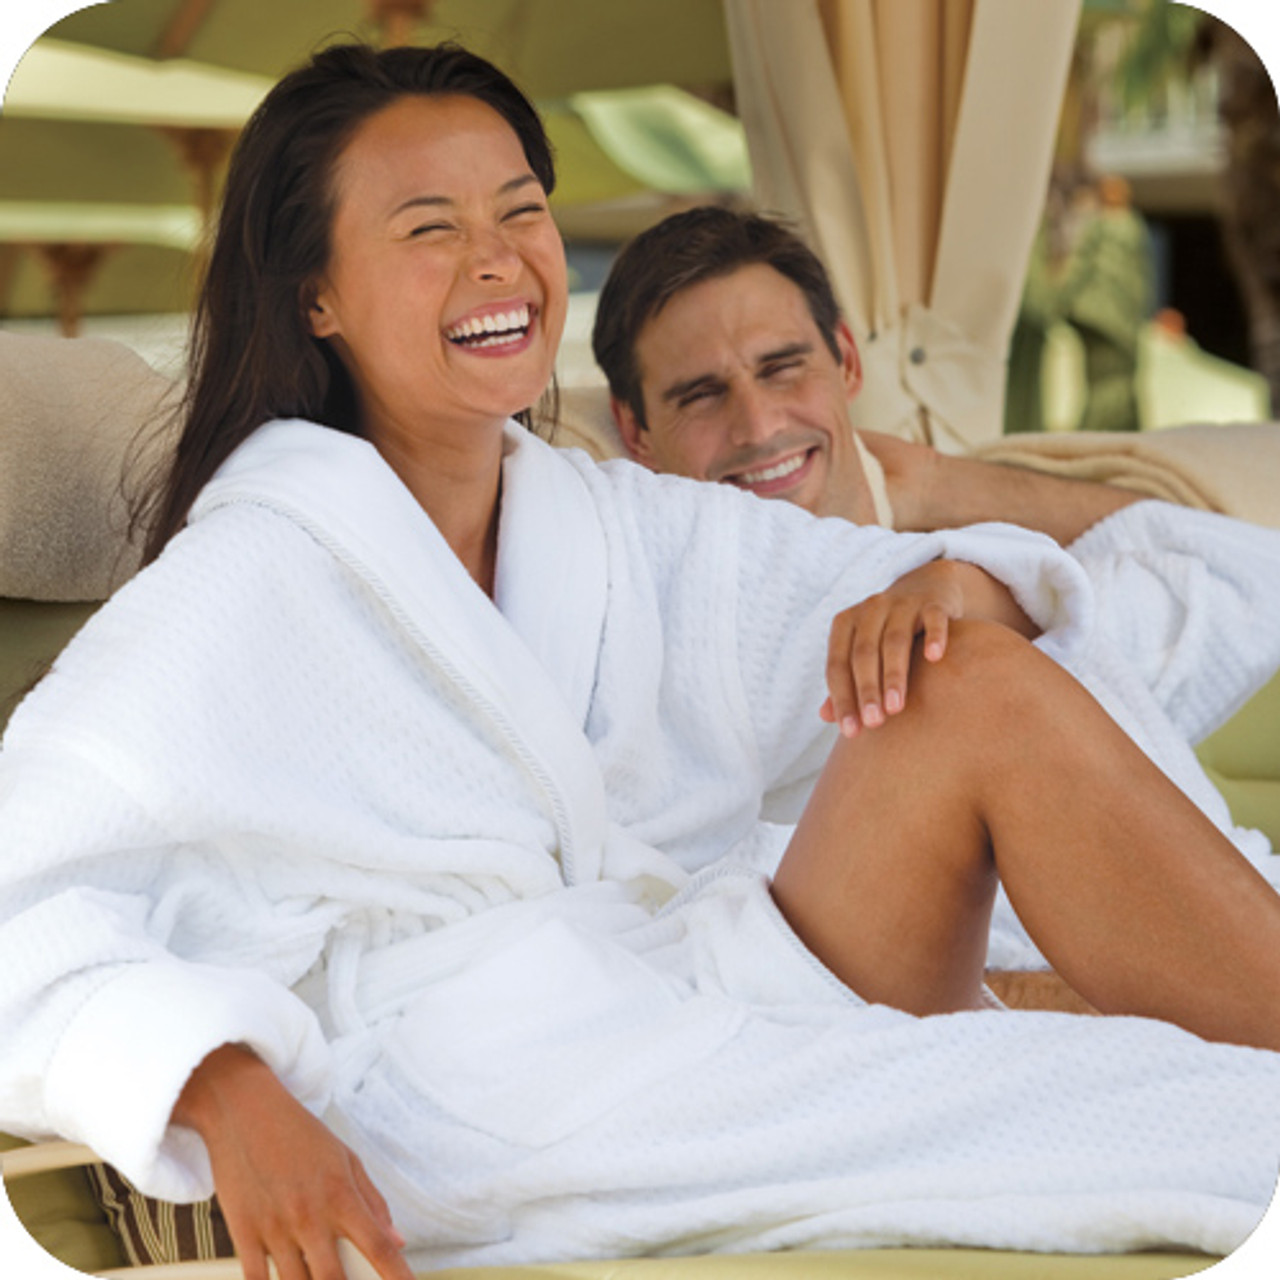 Checkered fabric is a great look for hotel robes